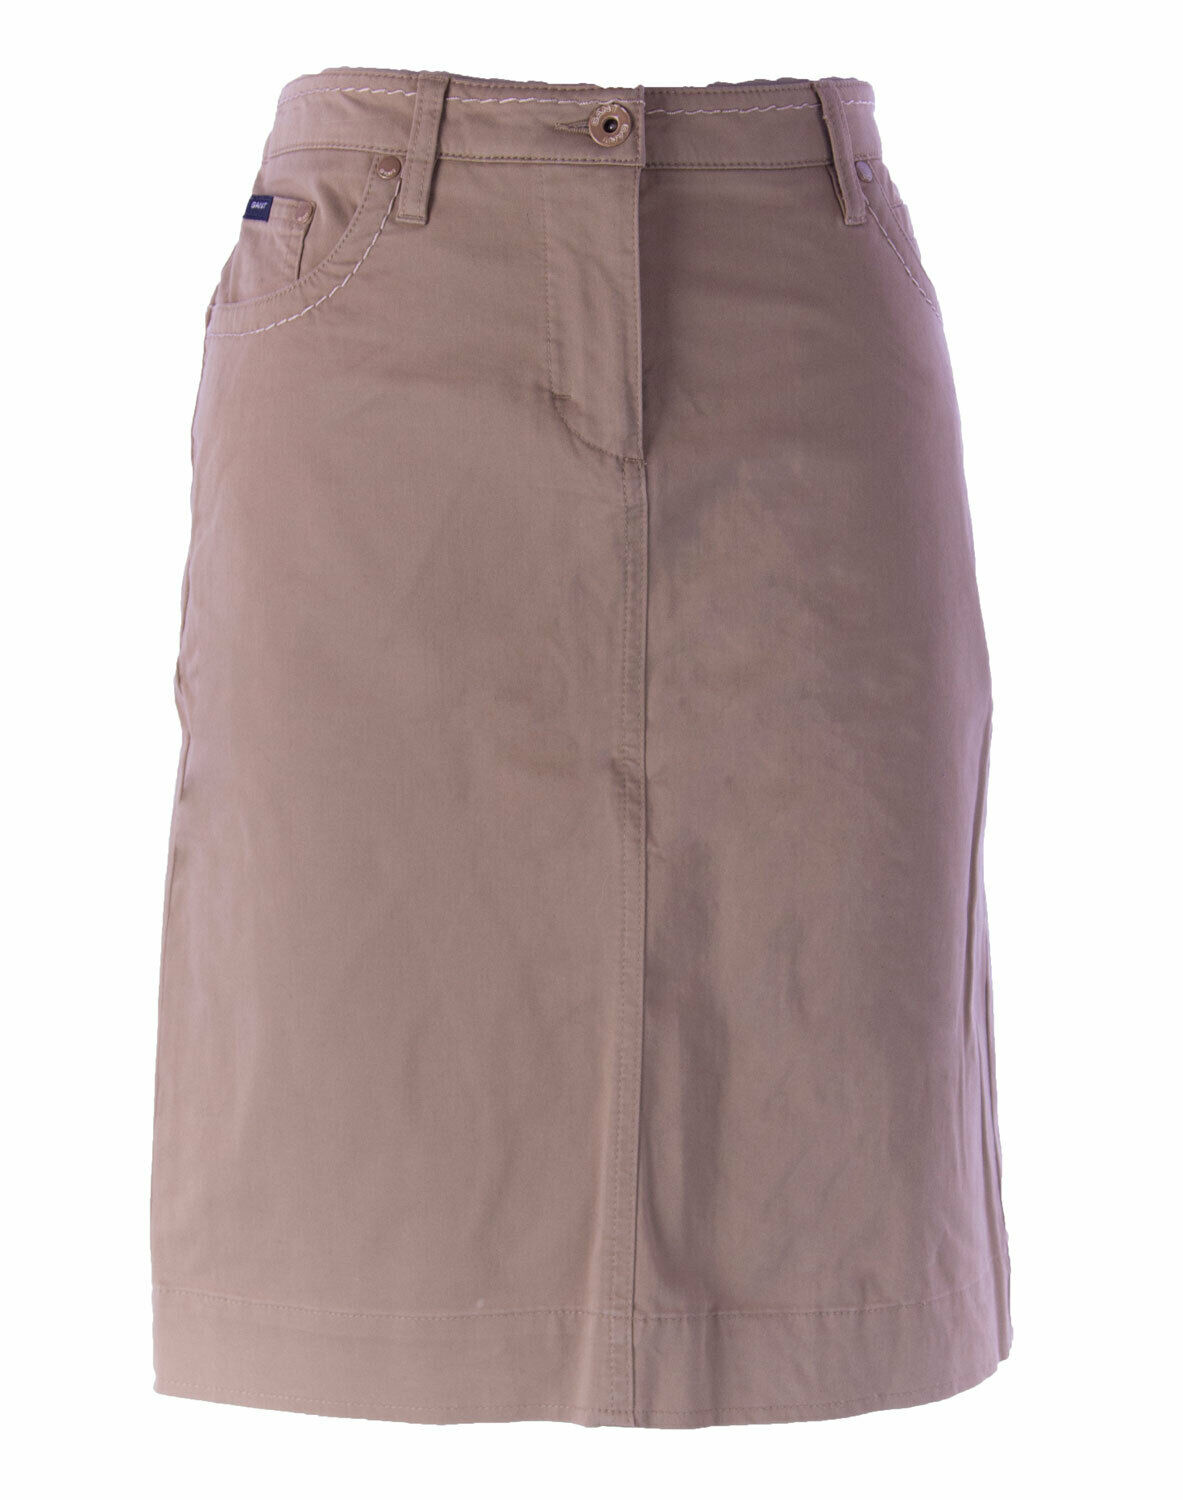 Gant Women's Camel Solid Brushed Pencil Skirt 440292 NEW